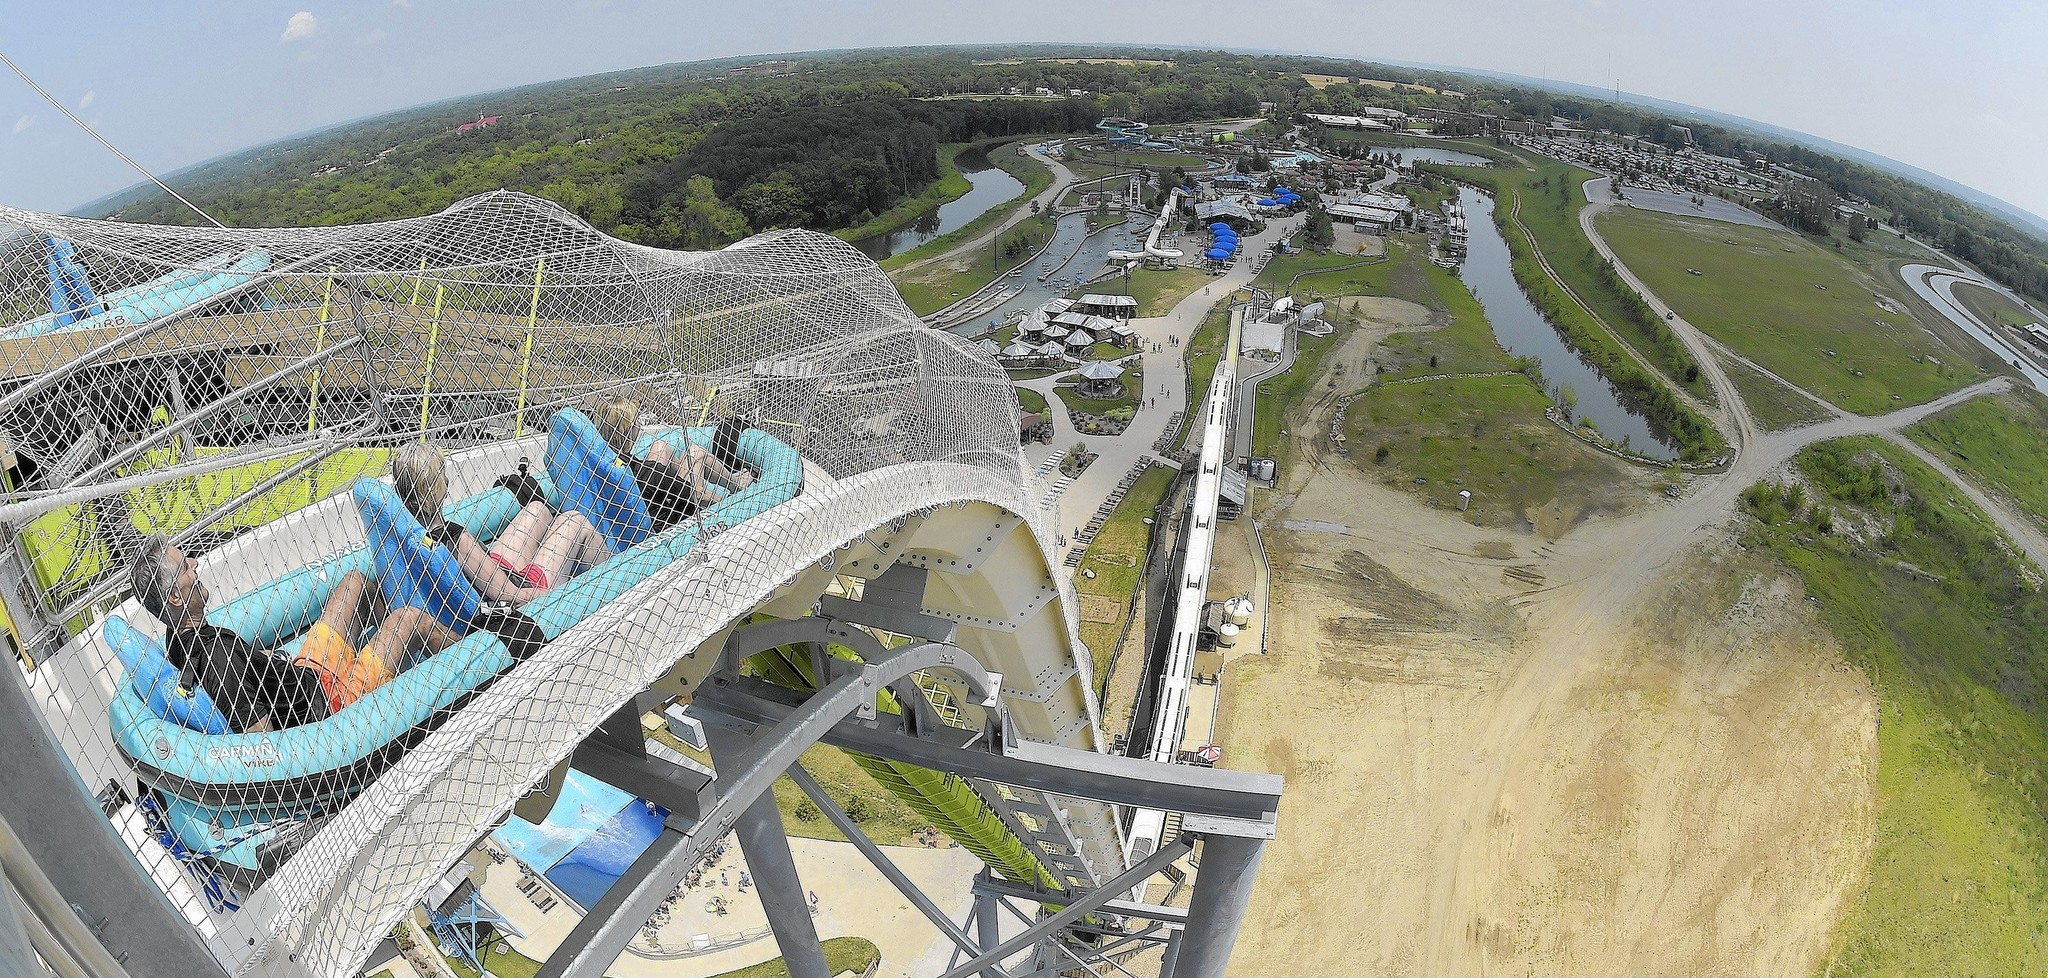 water slide death shows need for regulations the morning